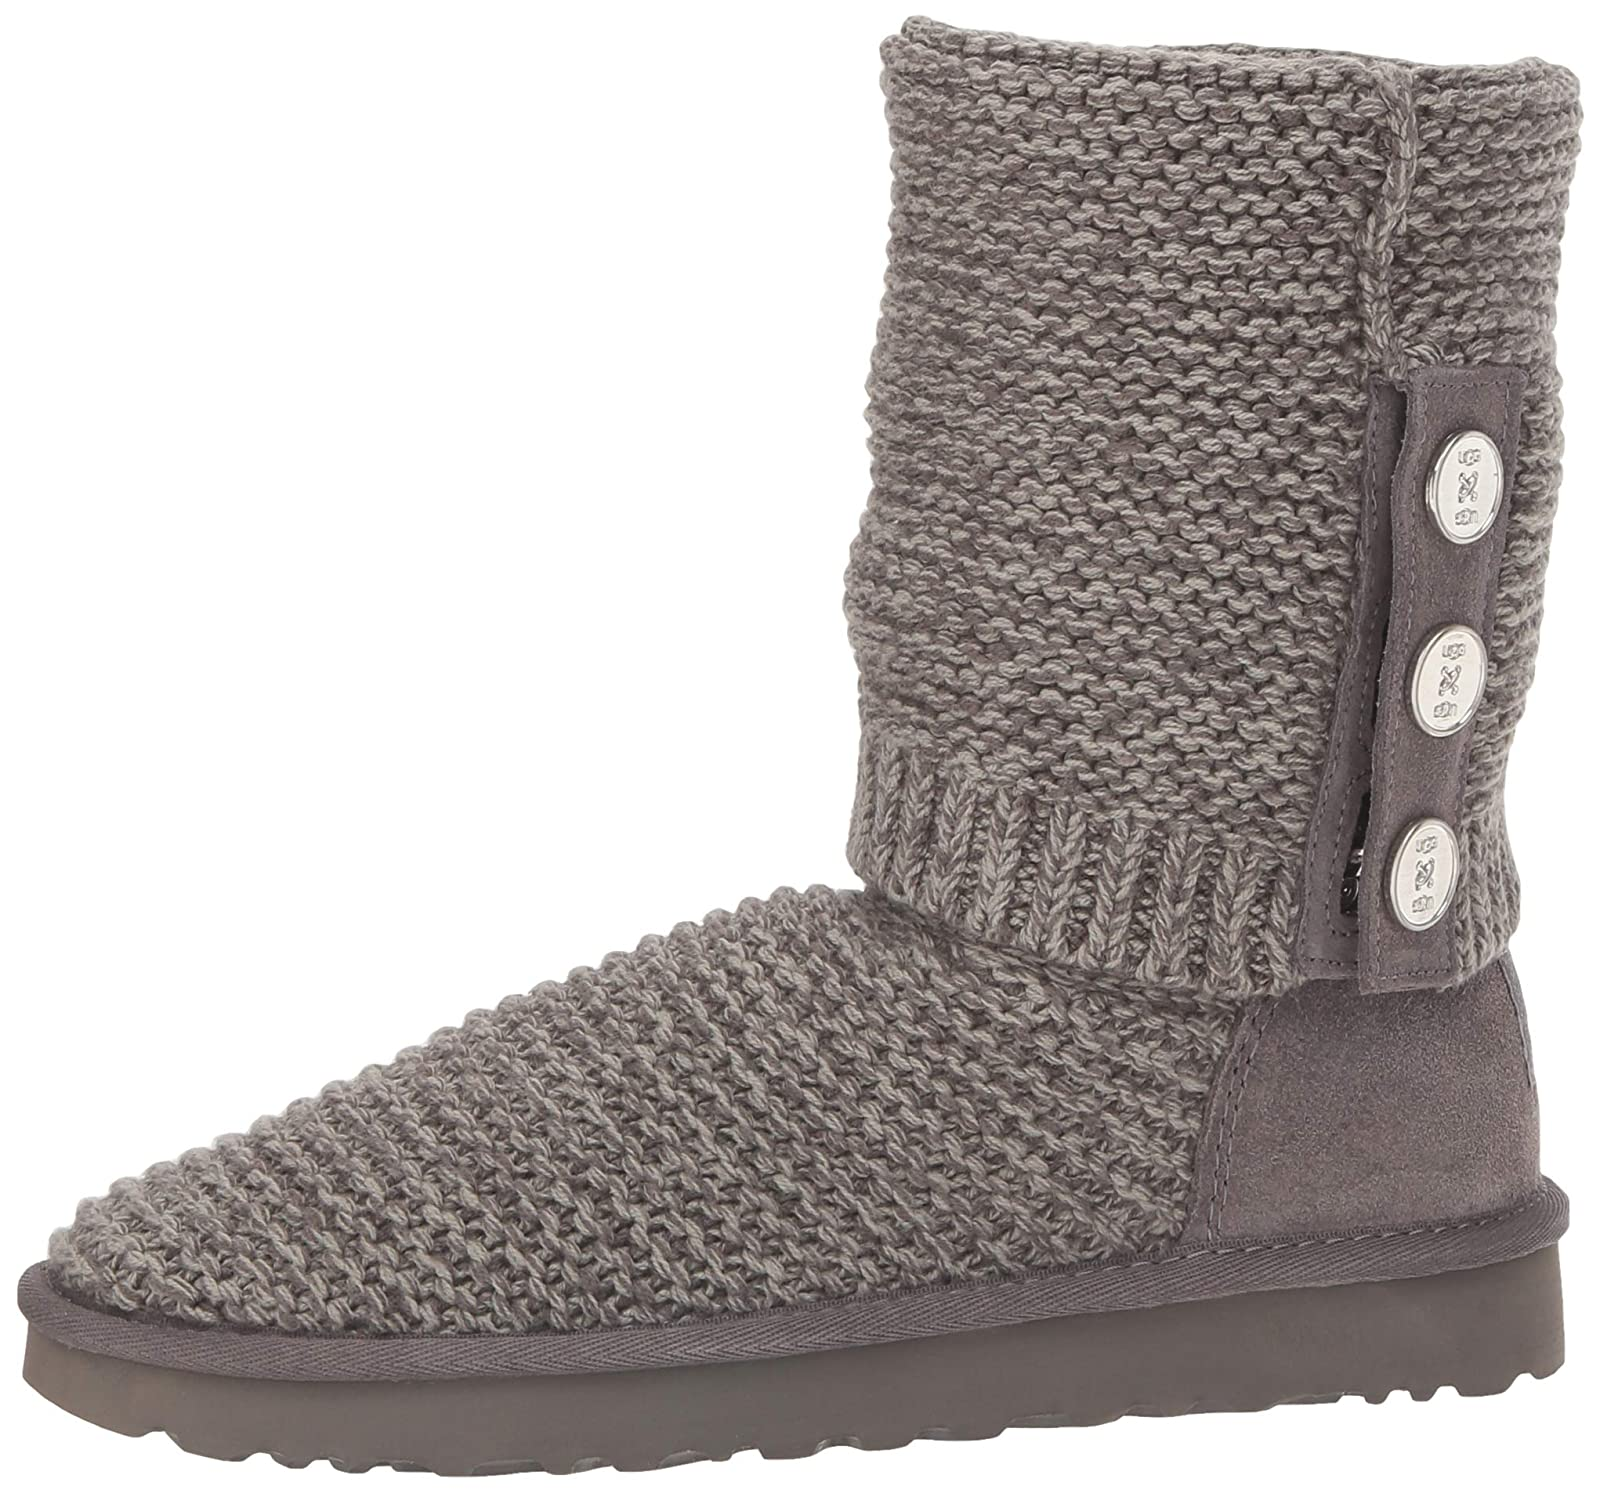 UGG Women's W PURL Cardy Knit Fashion Boot 1094949 - 5